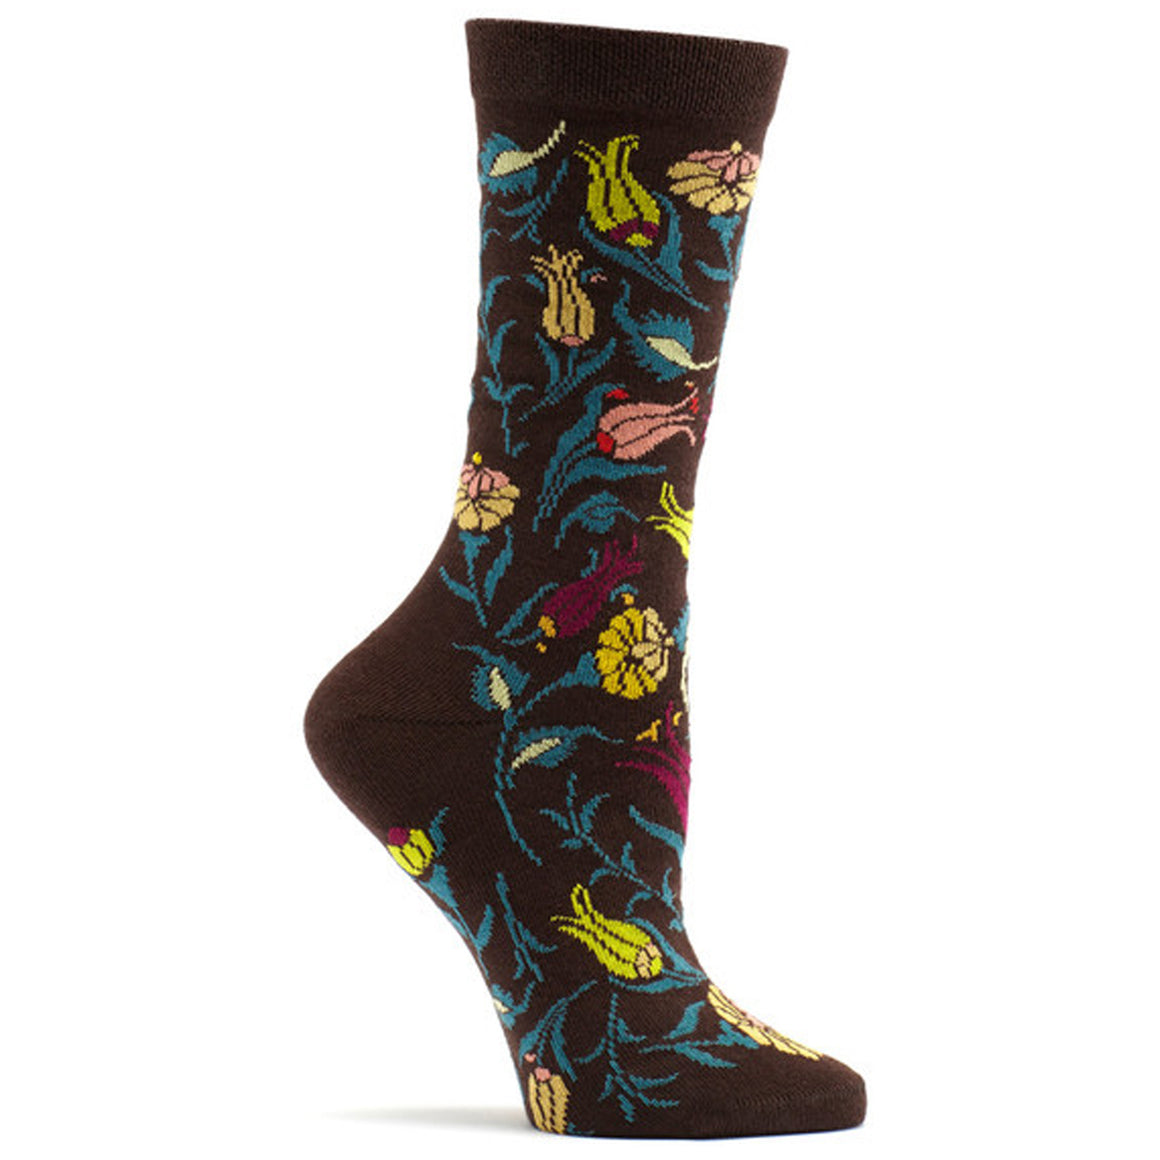 Turkish Garden Sock in Brown size 9-11 womens floral from ozone socks